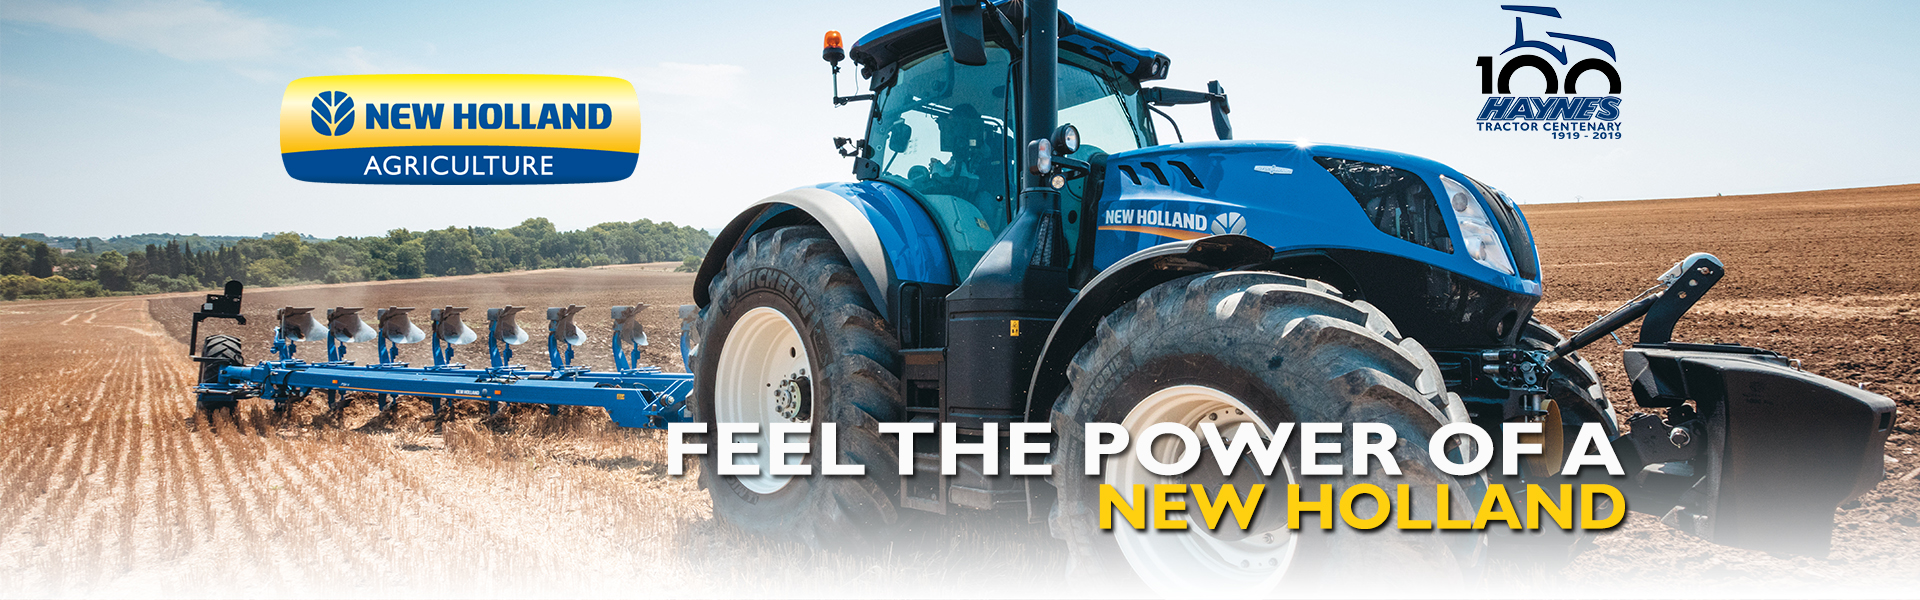 new holland banner 2.jpg